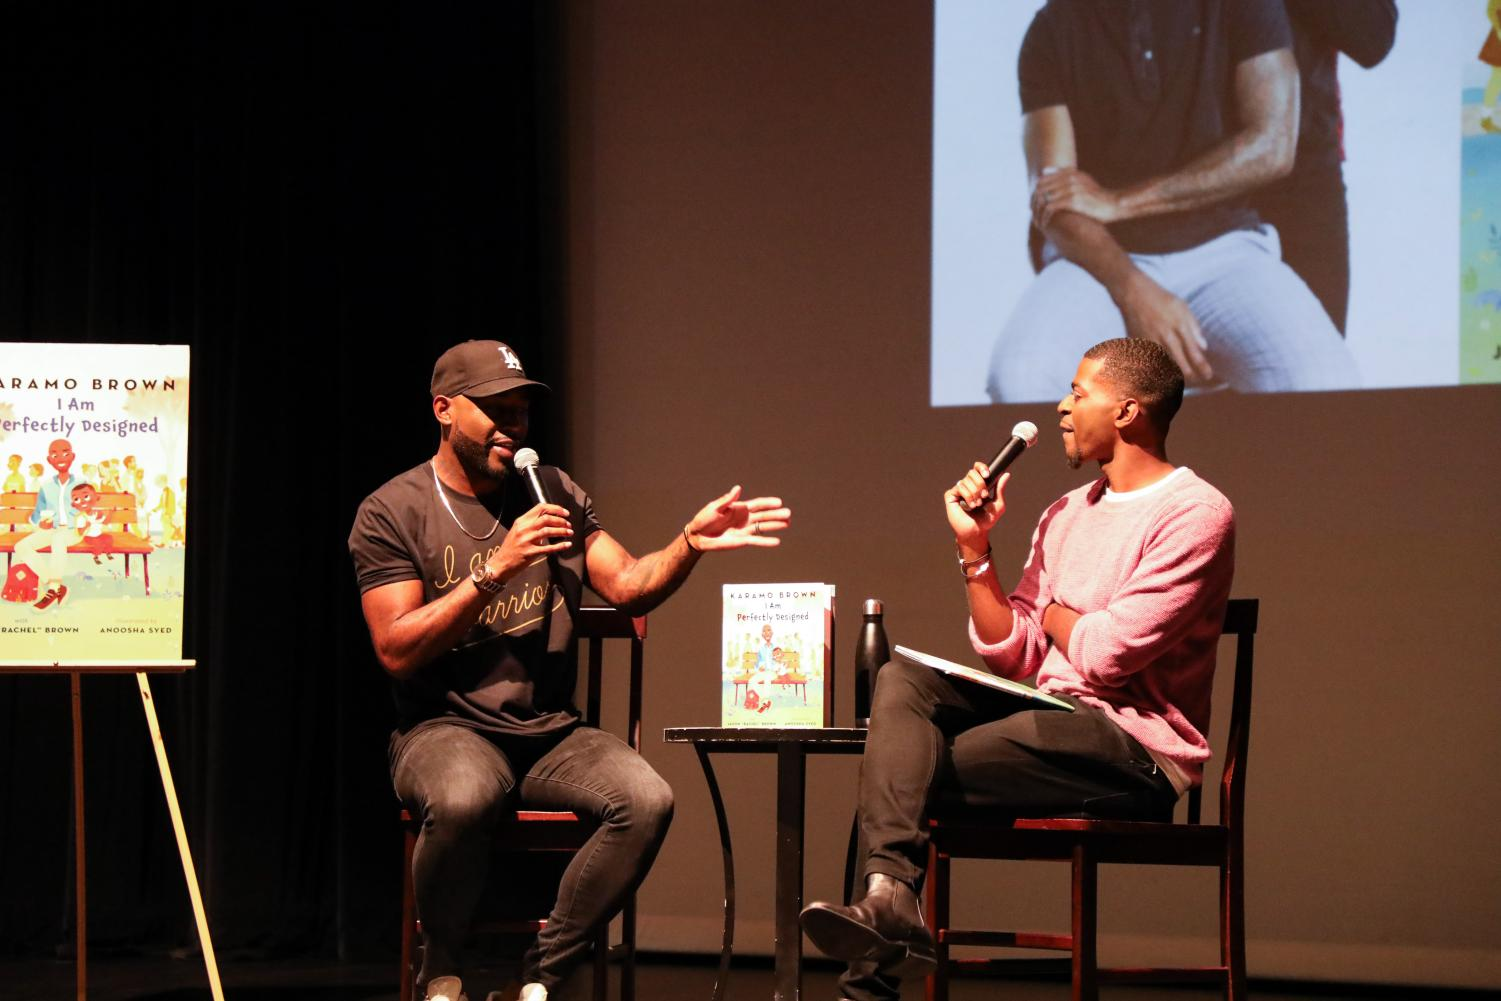 """Karamo Brown (left) and Jason """"Rachel"""" Brown (right) talk to an audience in the Eagle Theater about their new picture book, """"I Am Perfectly Designed."""" The father-son duo pulled from their own experiences and relationship to write a heartwarming story with an important message about self-confidence."""